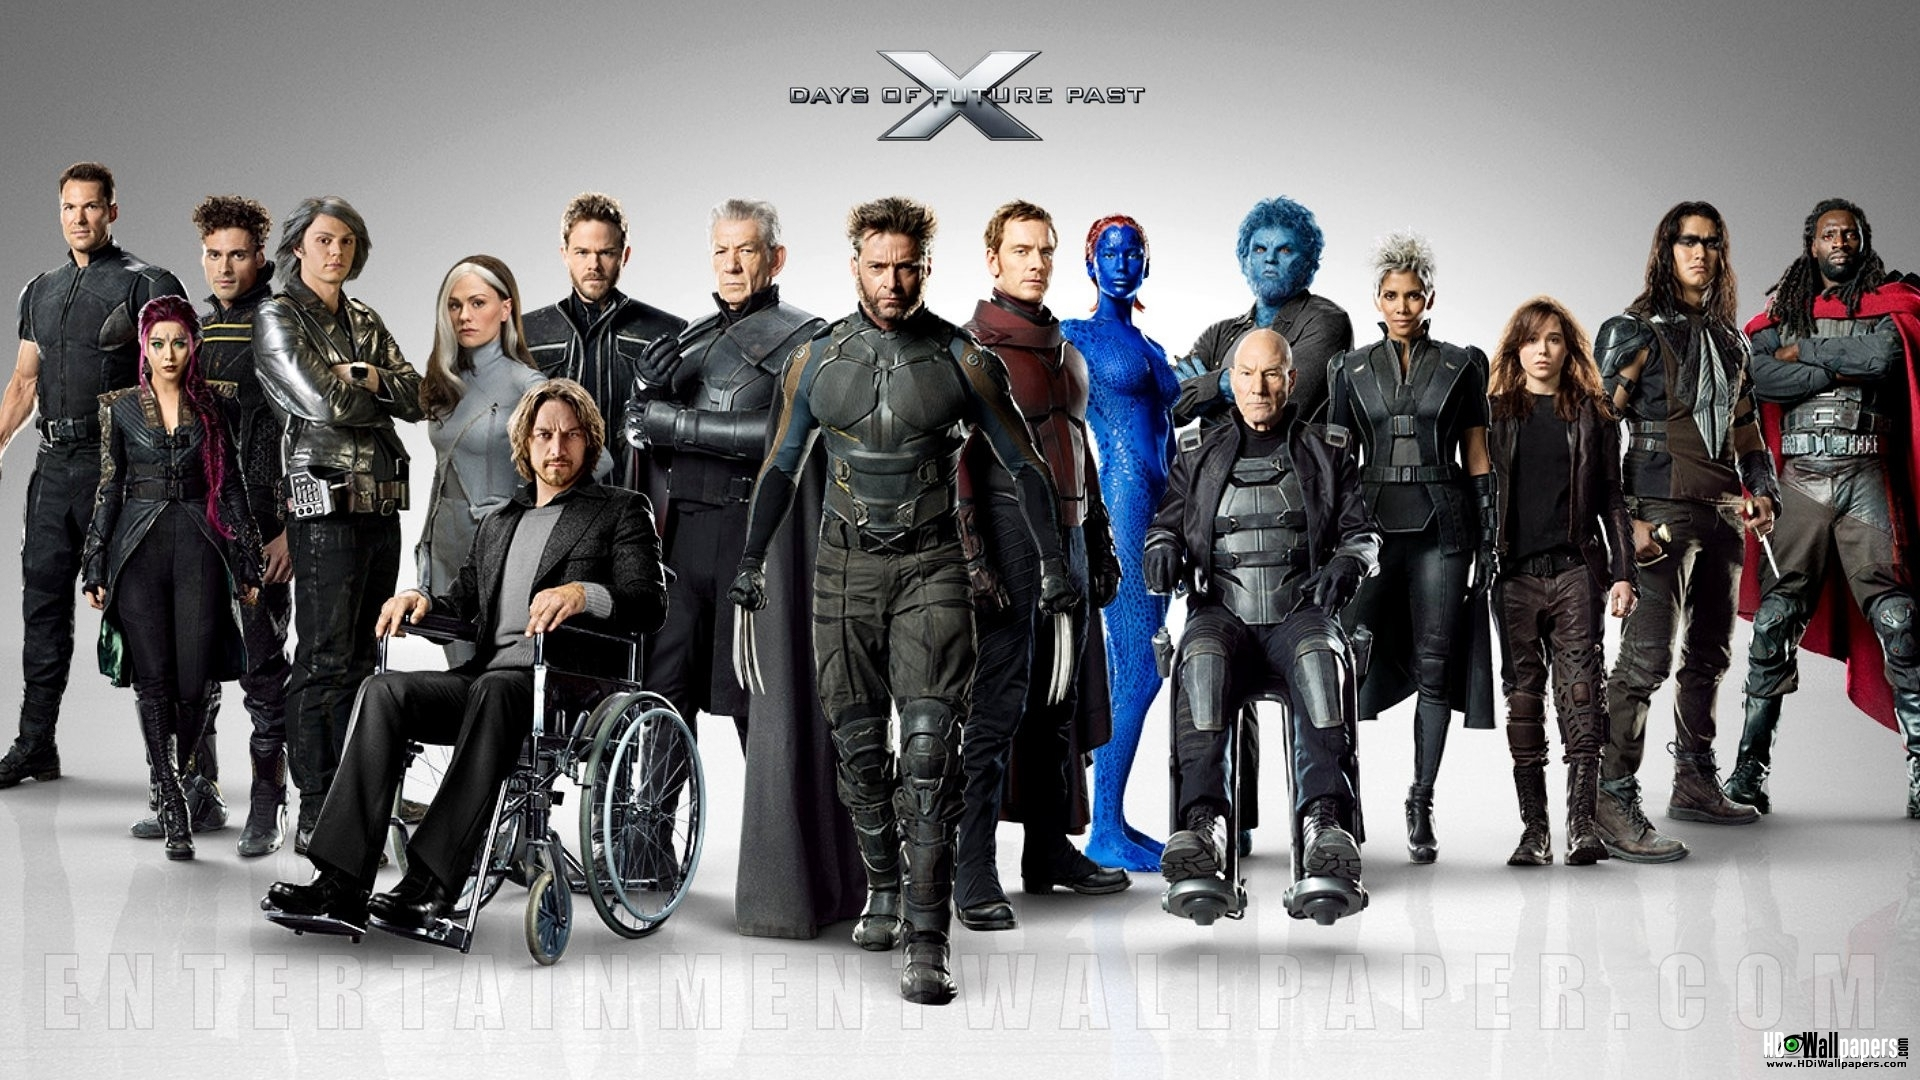 Free Download X Men Hd Wallpapers X Men Days Of Future Past Hd Wallpaper 1920x1080 For Your Desktop Mobile Tablet Explore 49 Days Of Future Past Desktop Poster Wallpapers